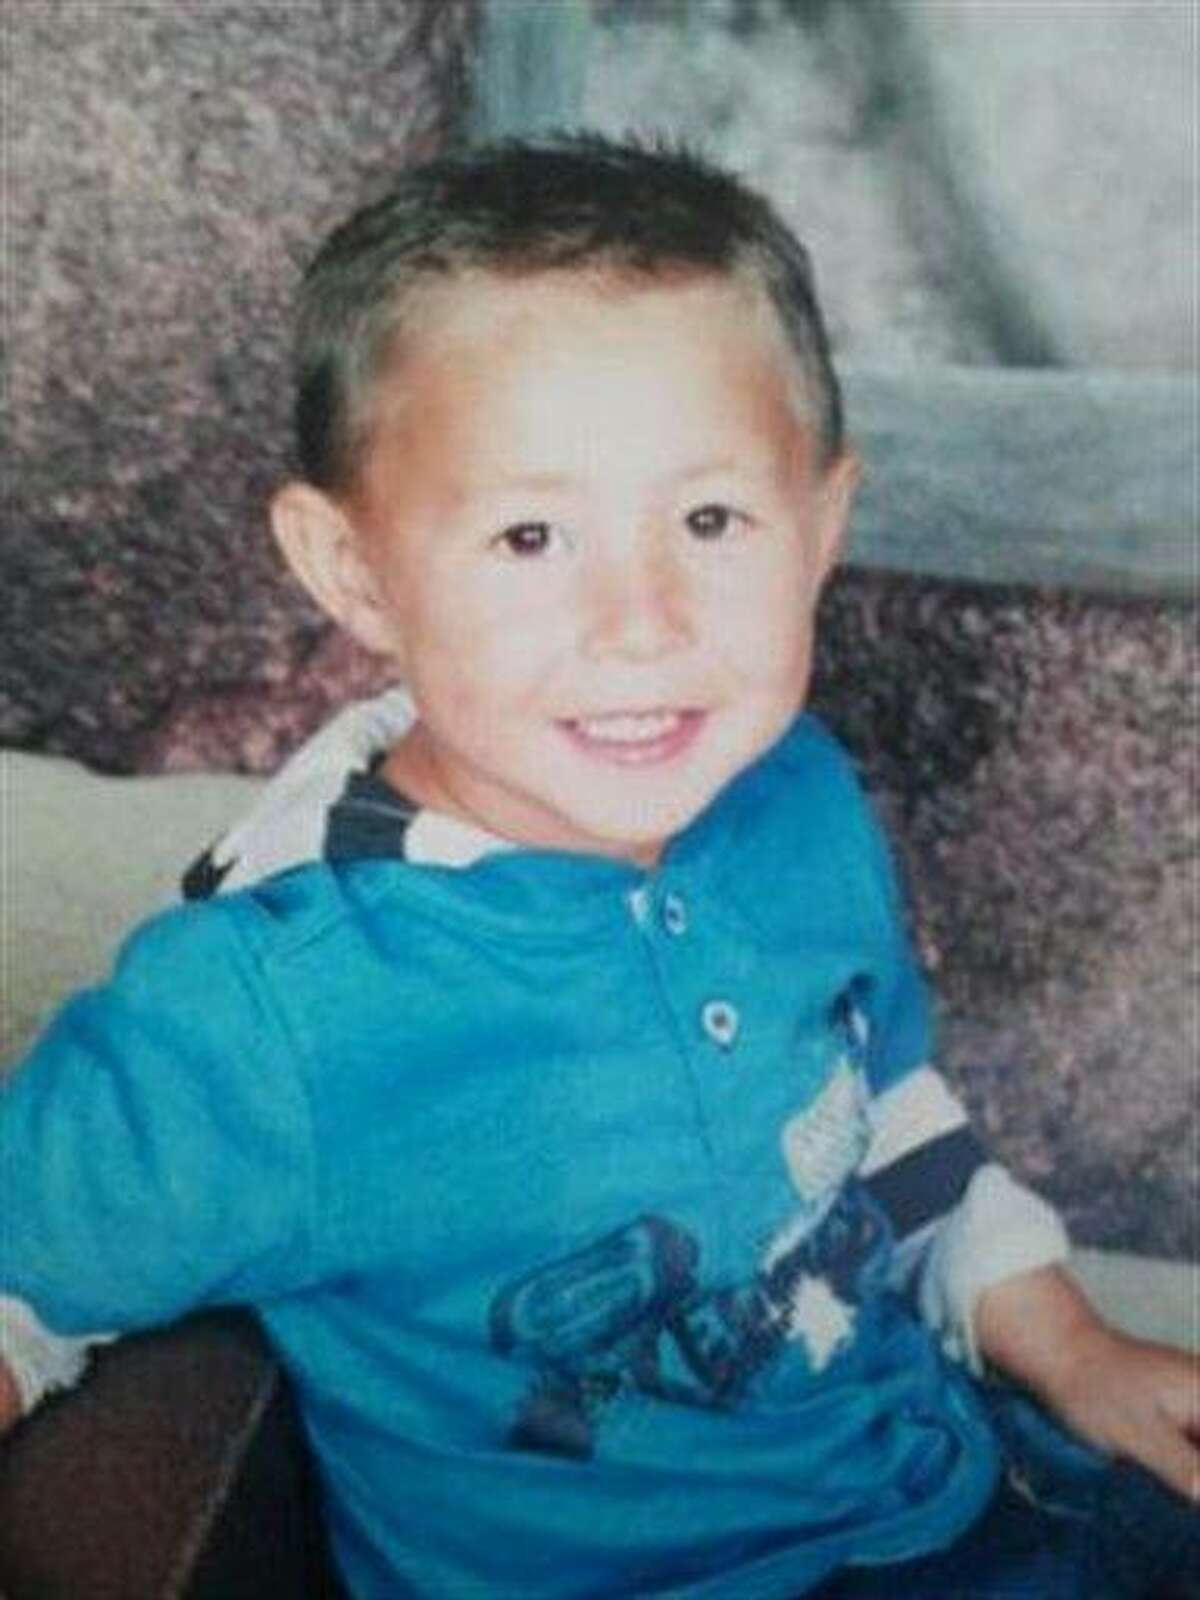 This image provided by the New Mexico State Police shows 4-year-old Samuel Jones in an undated photo. Associated Press